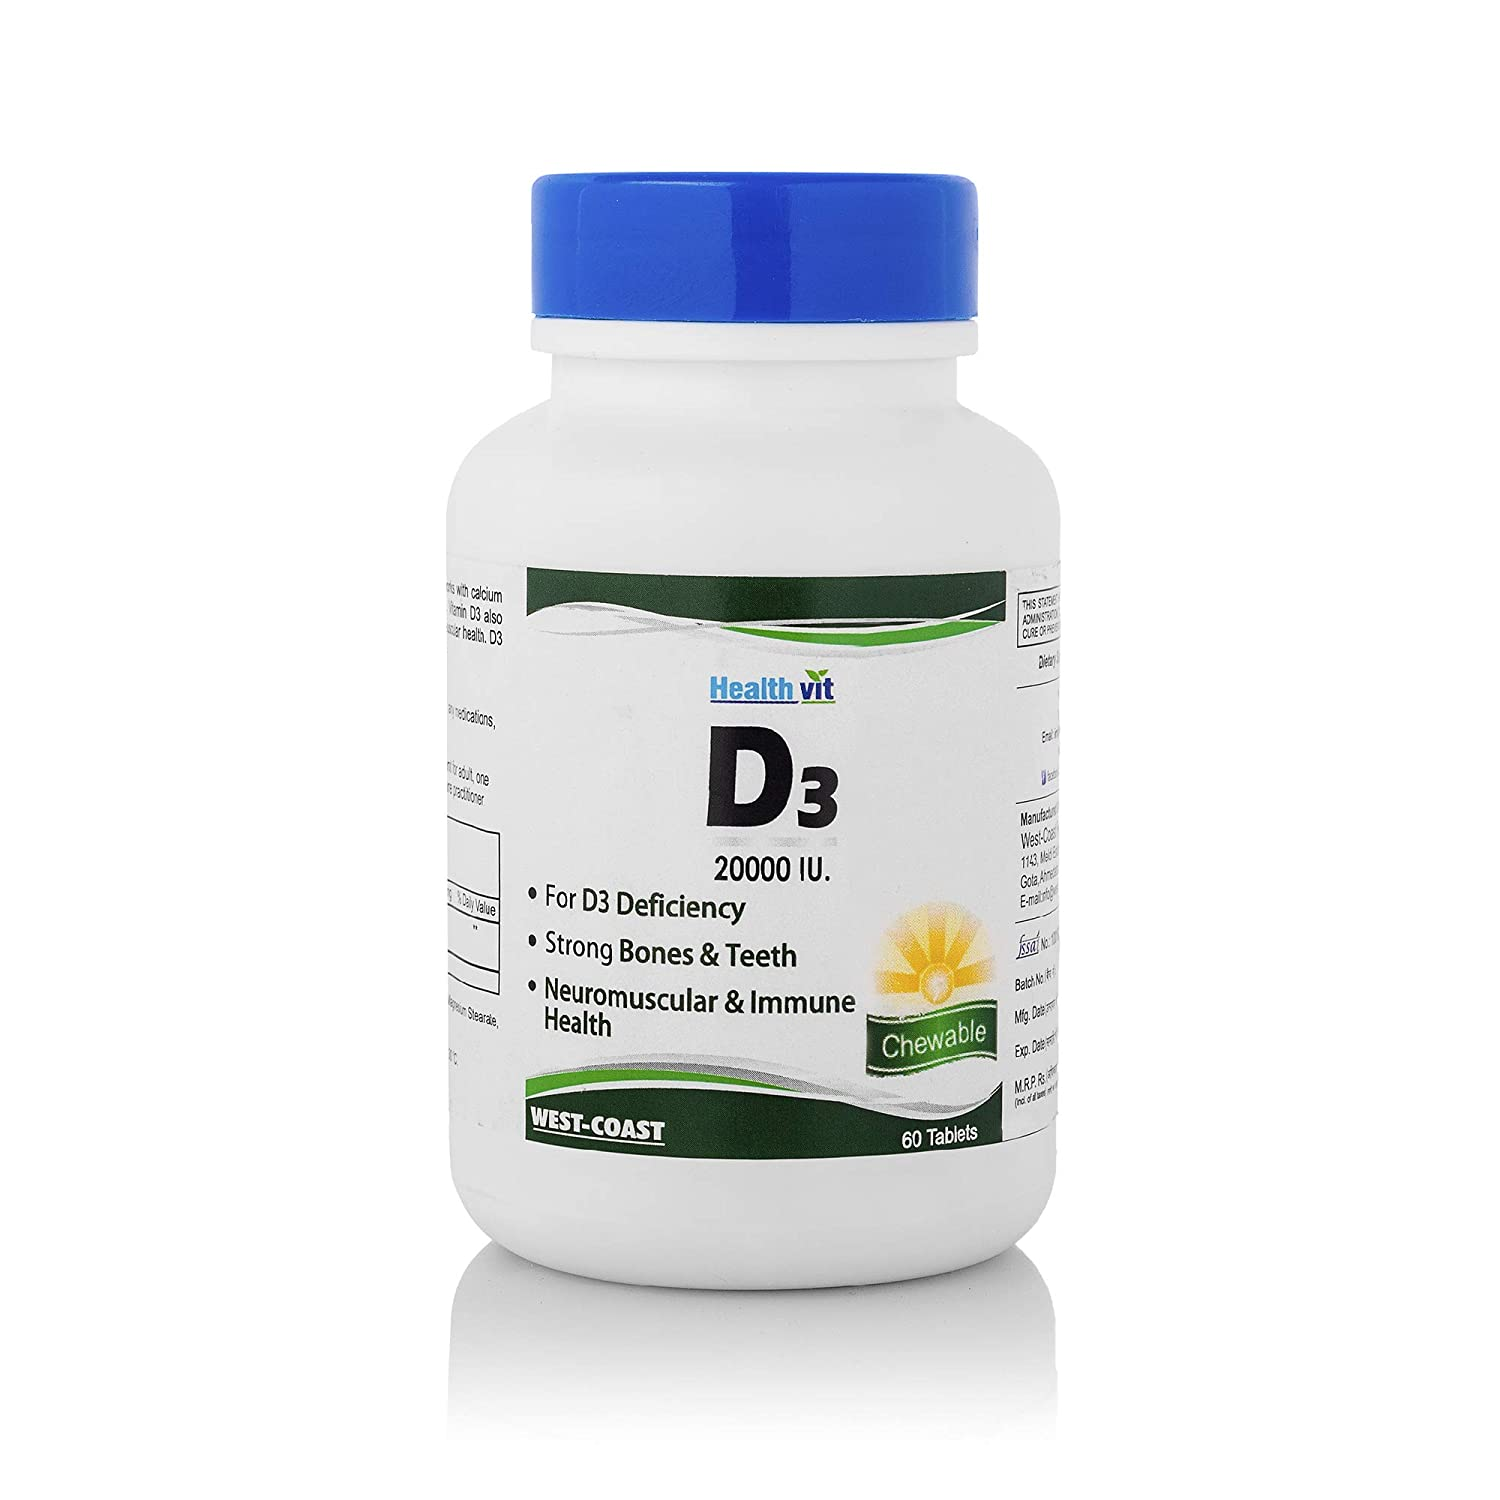 Buy Healthvit Vitamin D3 20000 IU Maximum Strength - 60 Tablets Online at  Low Prices in India - Amazon.in